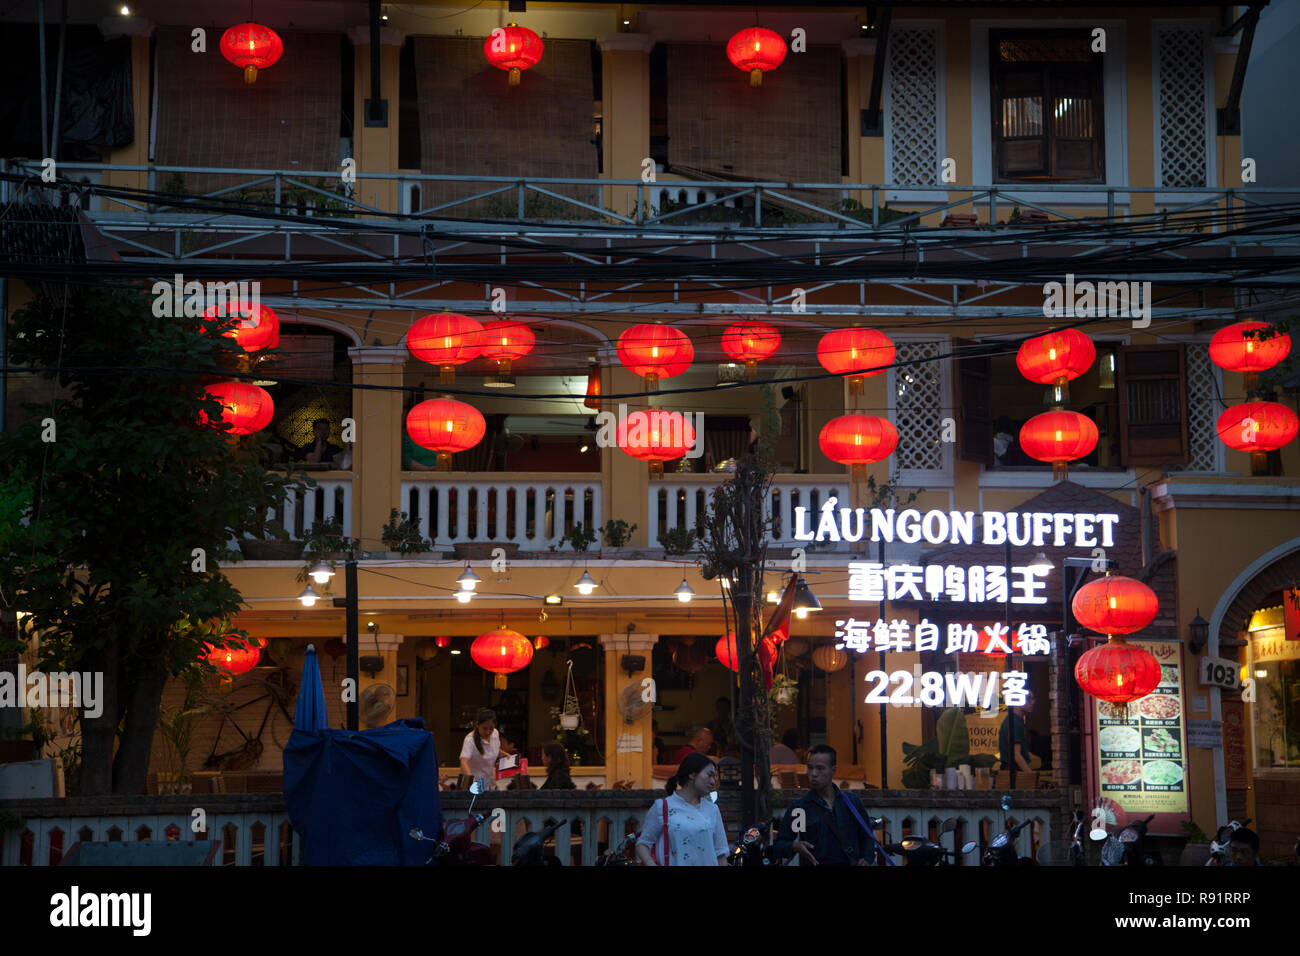 Nha Trang, Vietnam: Asian restaurant exterior decorated with red paper lanterns. People eating at a Chinese buffet, view of windows from outside Stock Photo